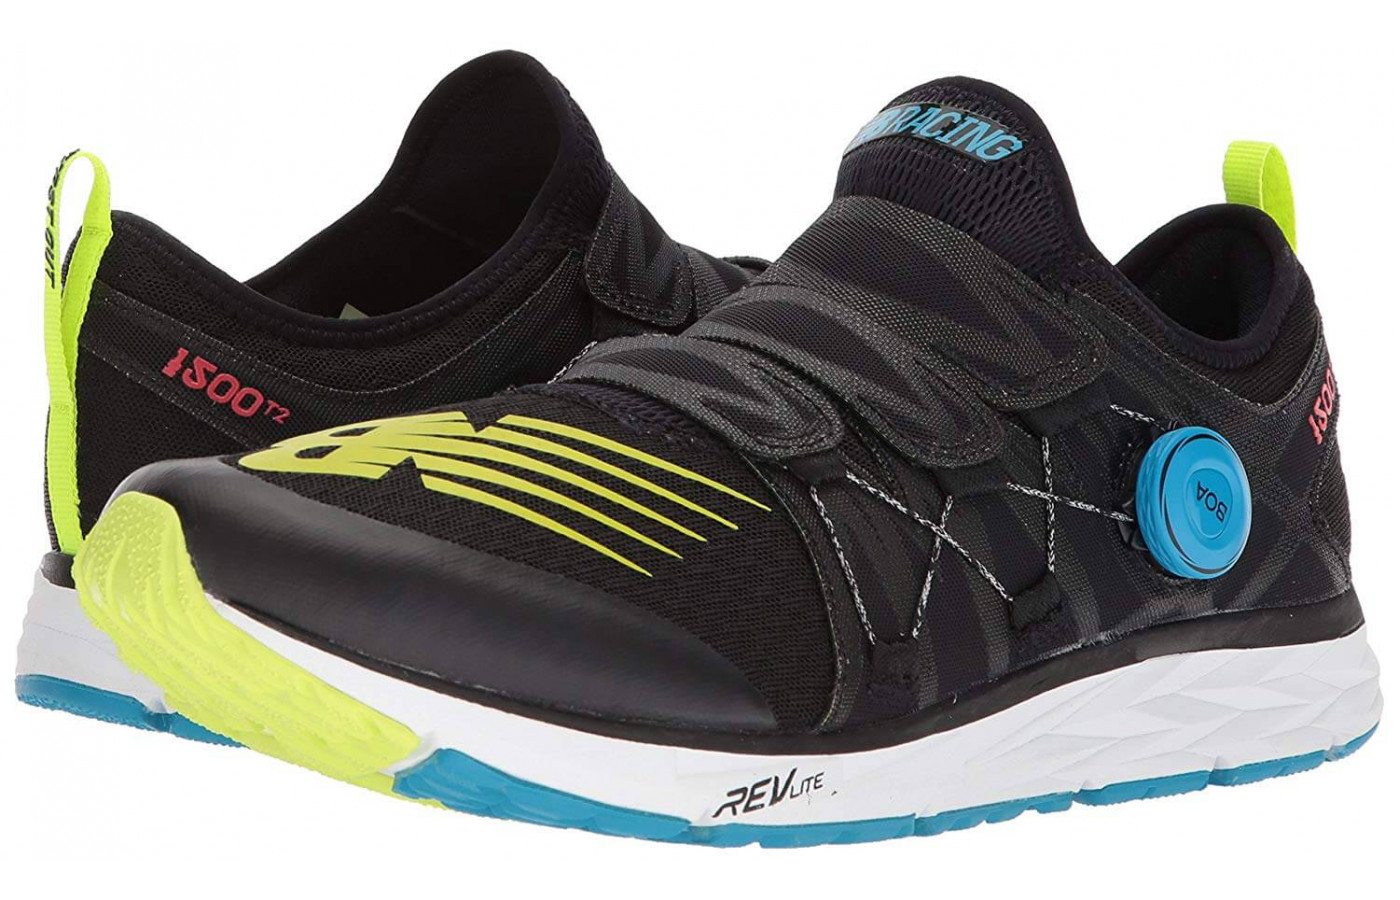 new product f175b f3bd6 New Balance 1500 T2 Fully Reviewed for Quality